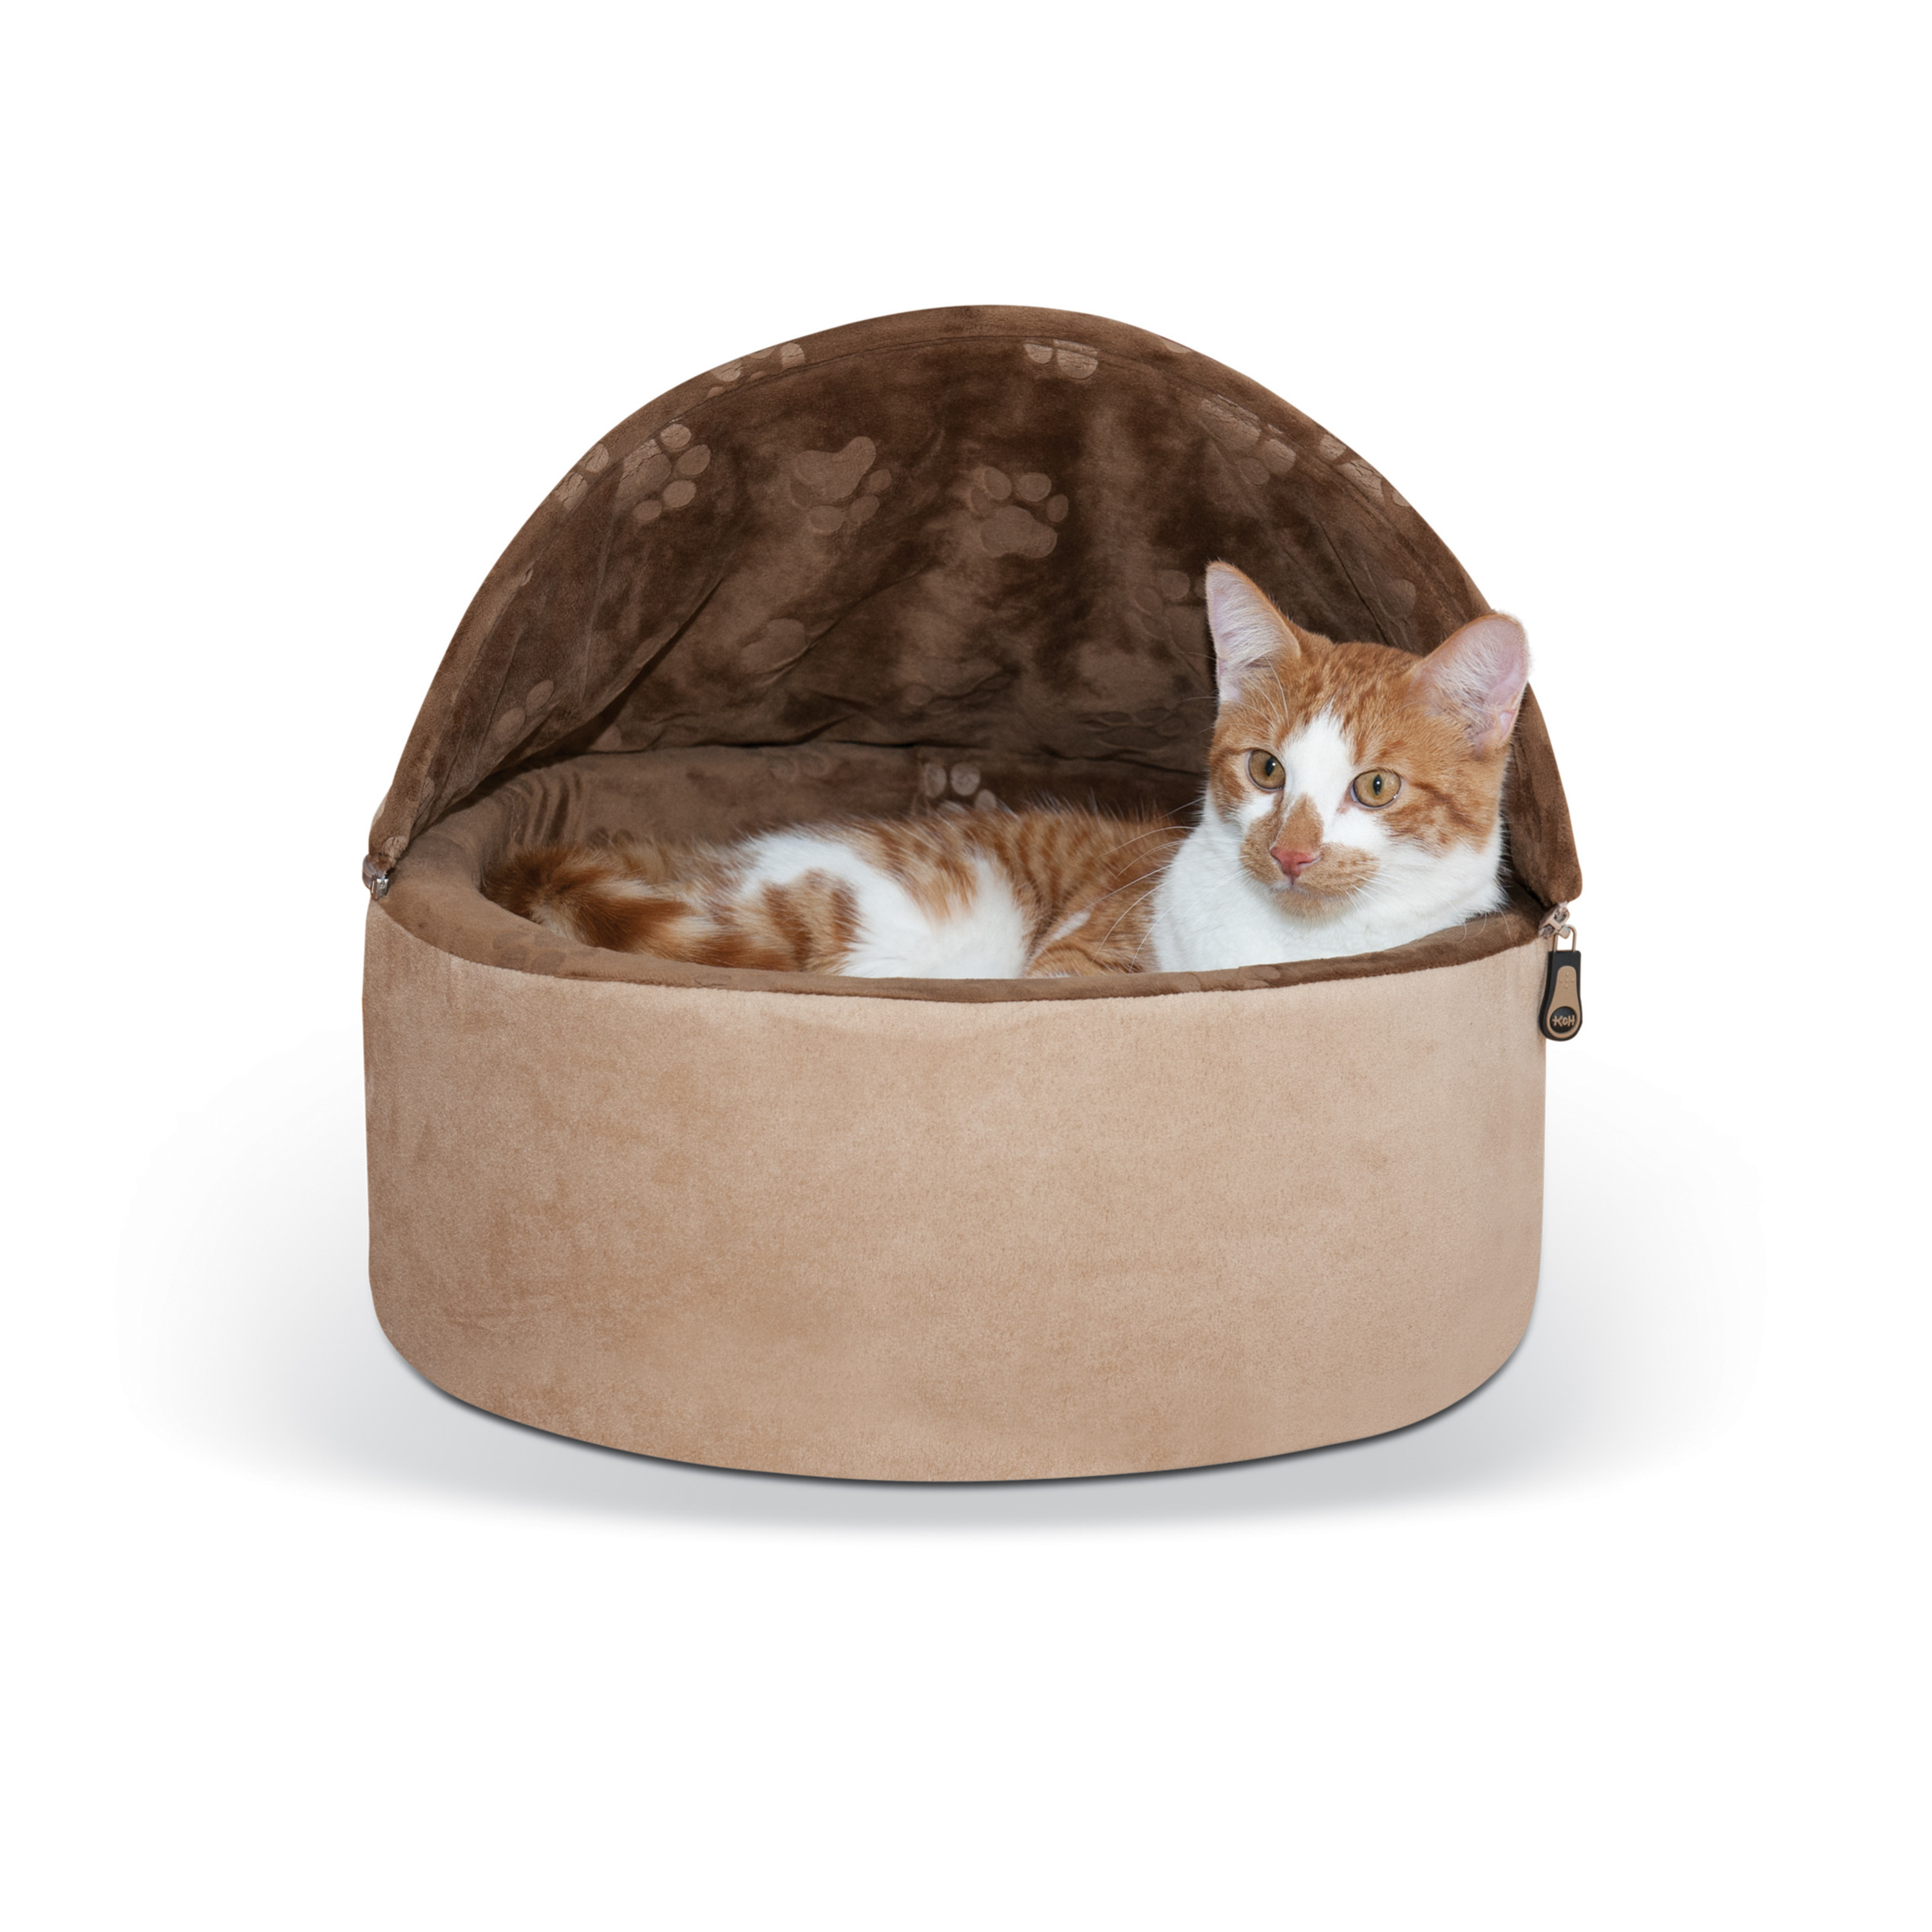 K&H Pet Products Self-Warming Kitty Bed Hooded Small Chocolate/Tan 16""